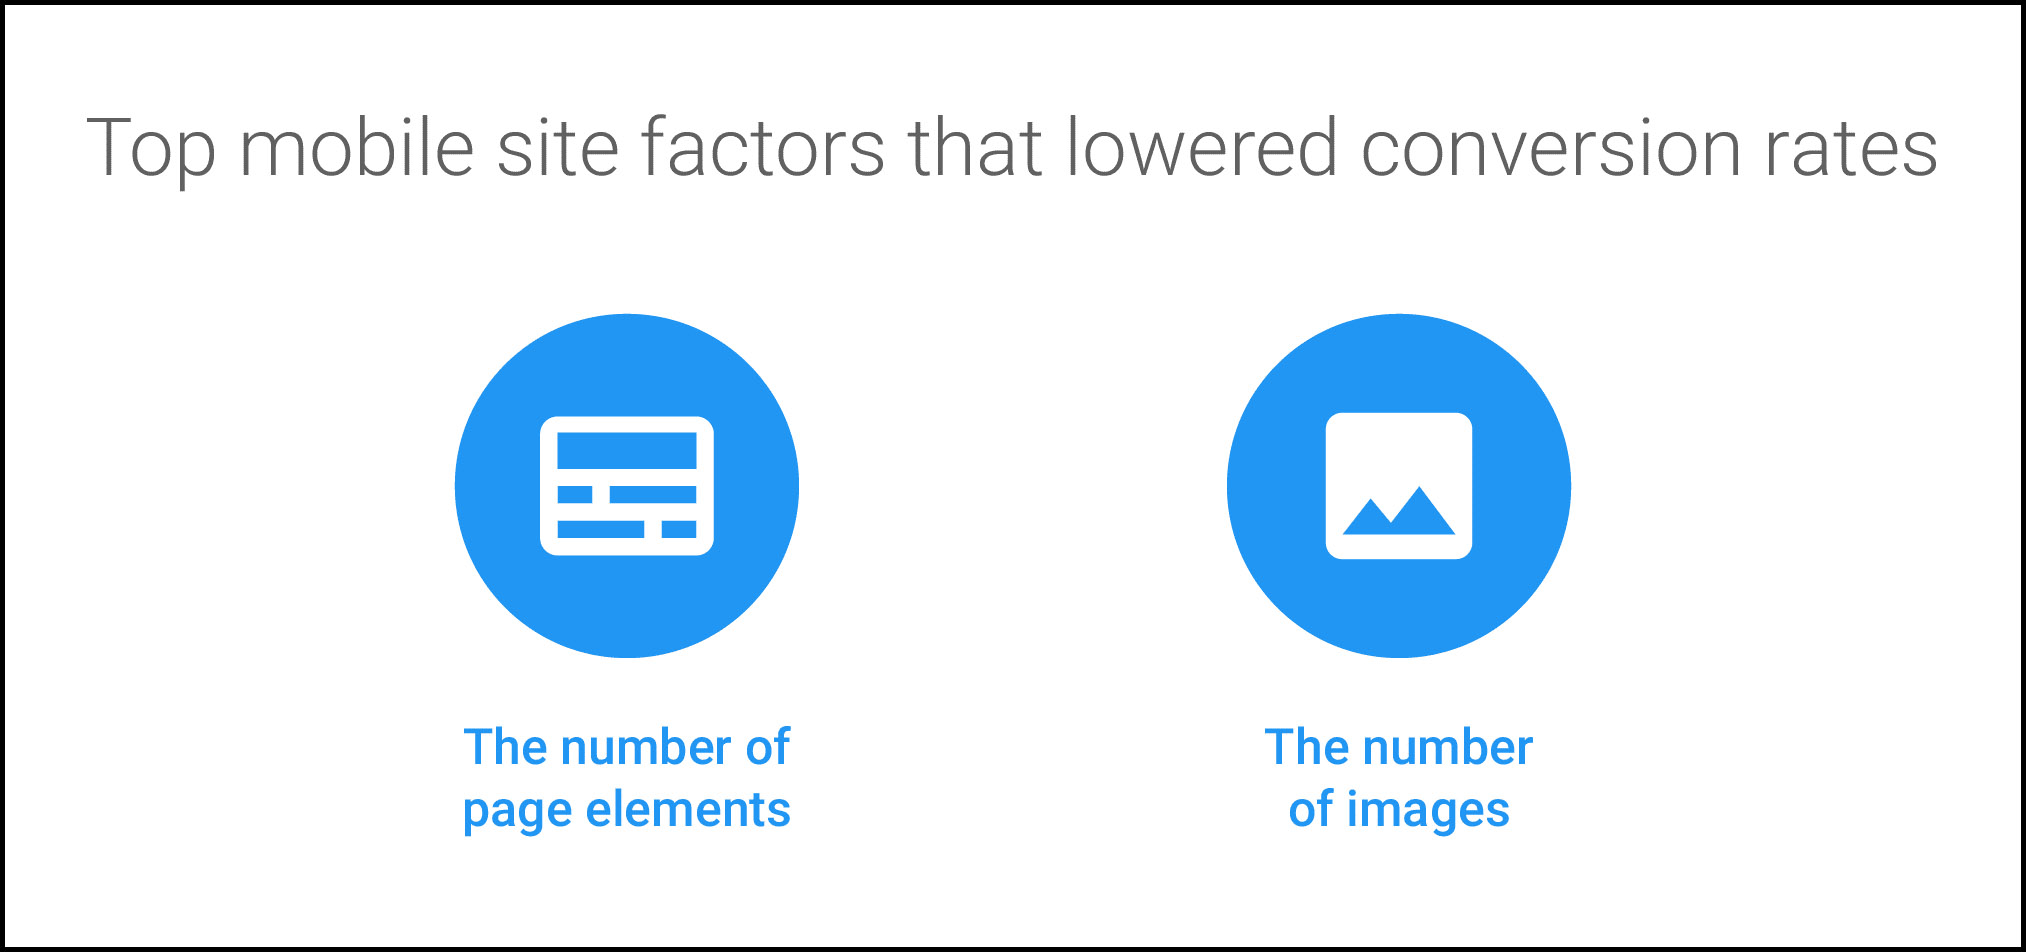 The number of page elements and images are the top site factors that lowered conversion rates